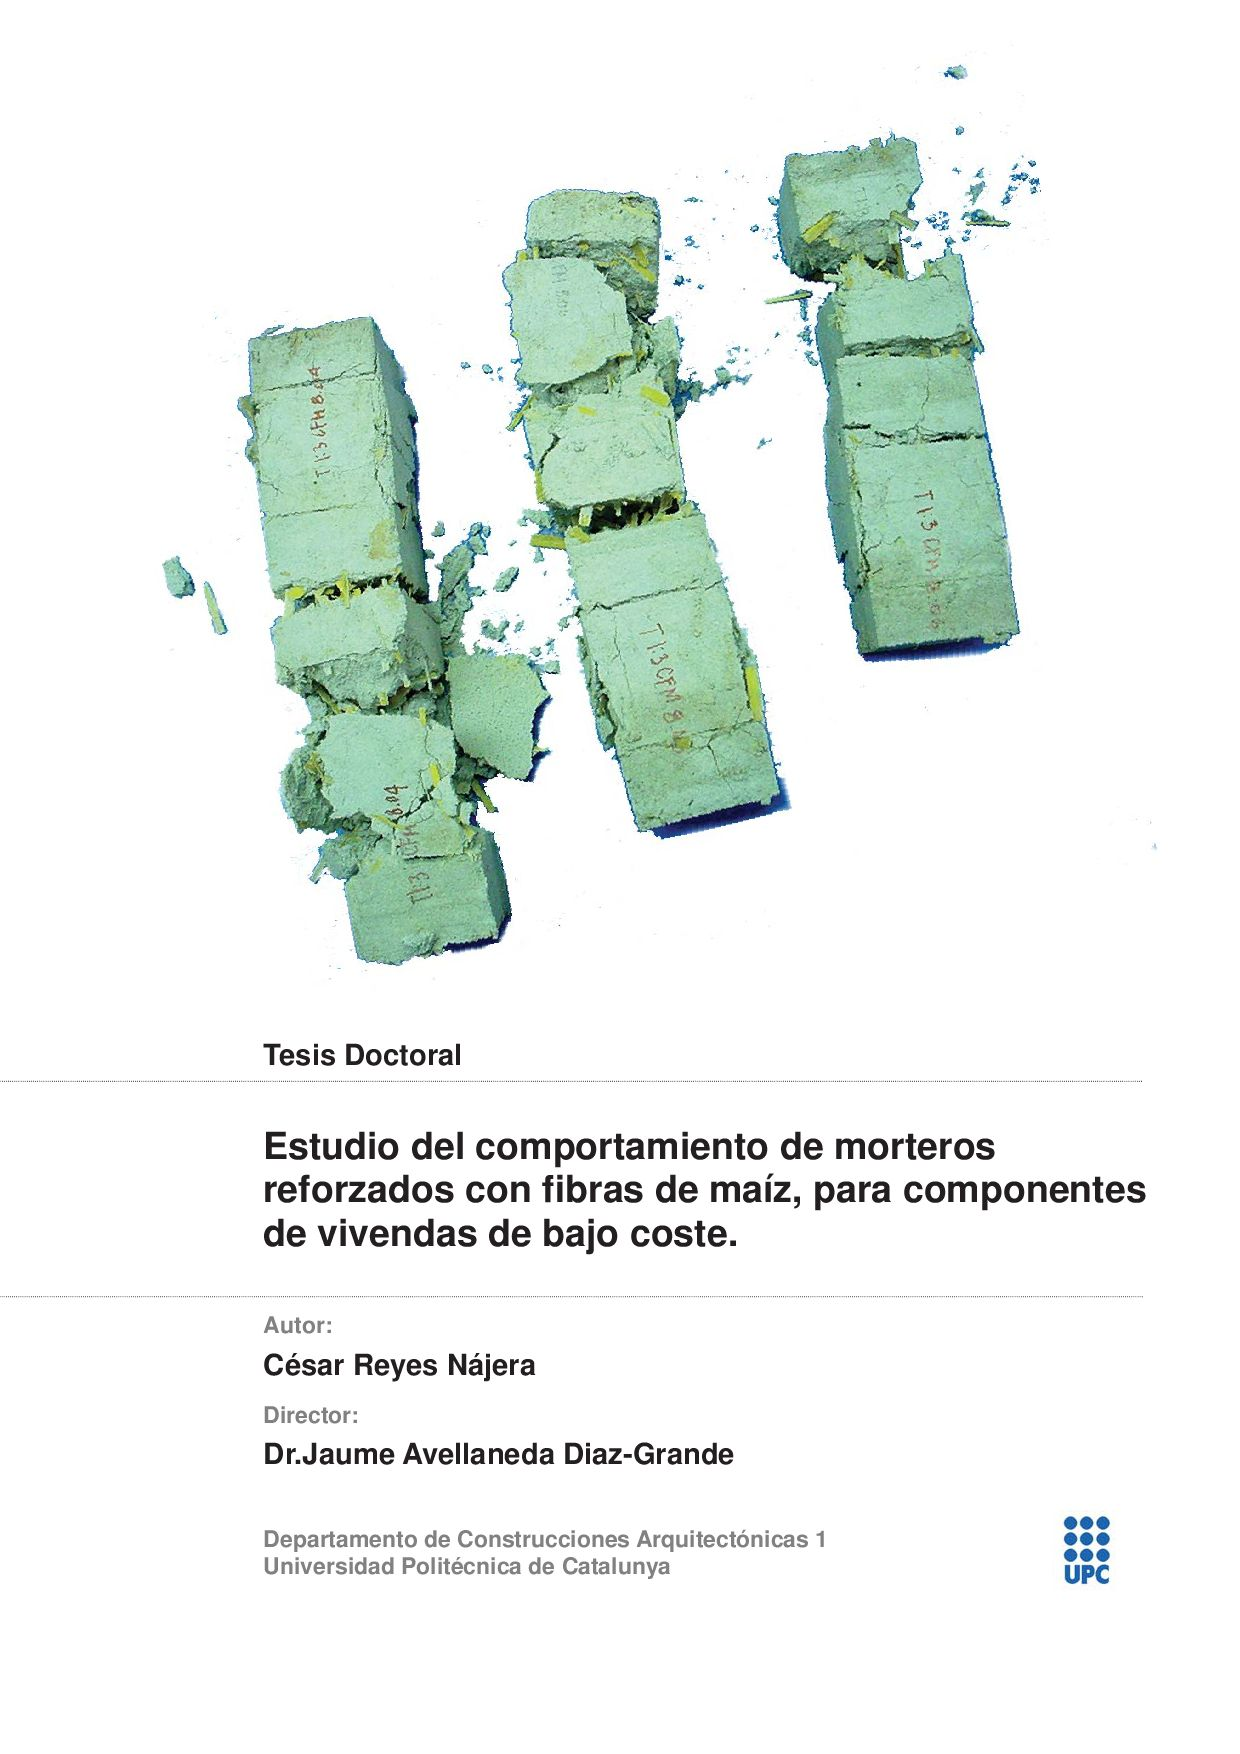 Estudio de compositos de cal y fibras de maíz by dpr-barcelona - issuu